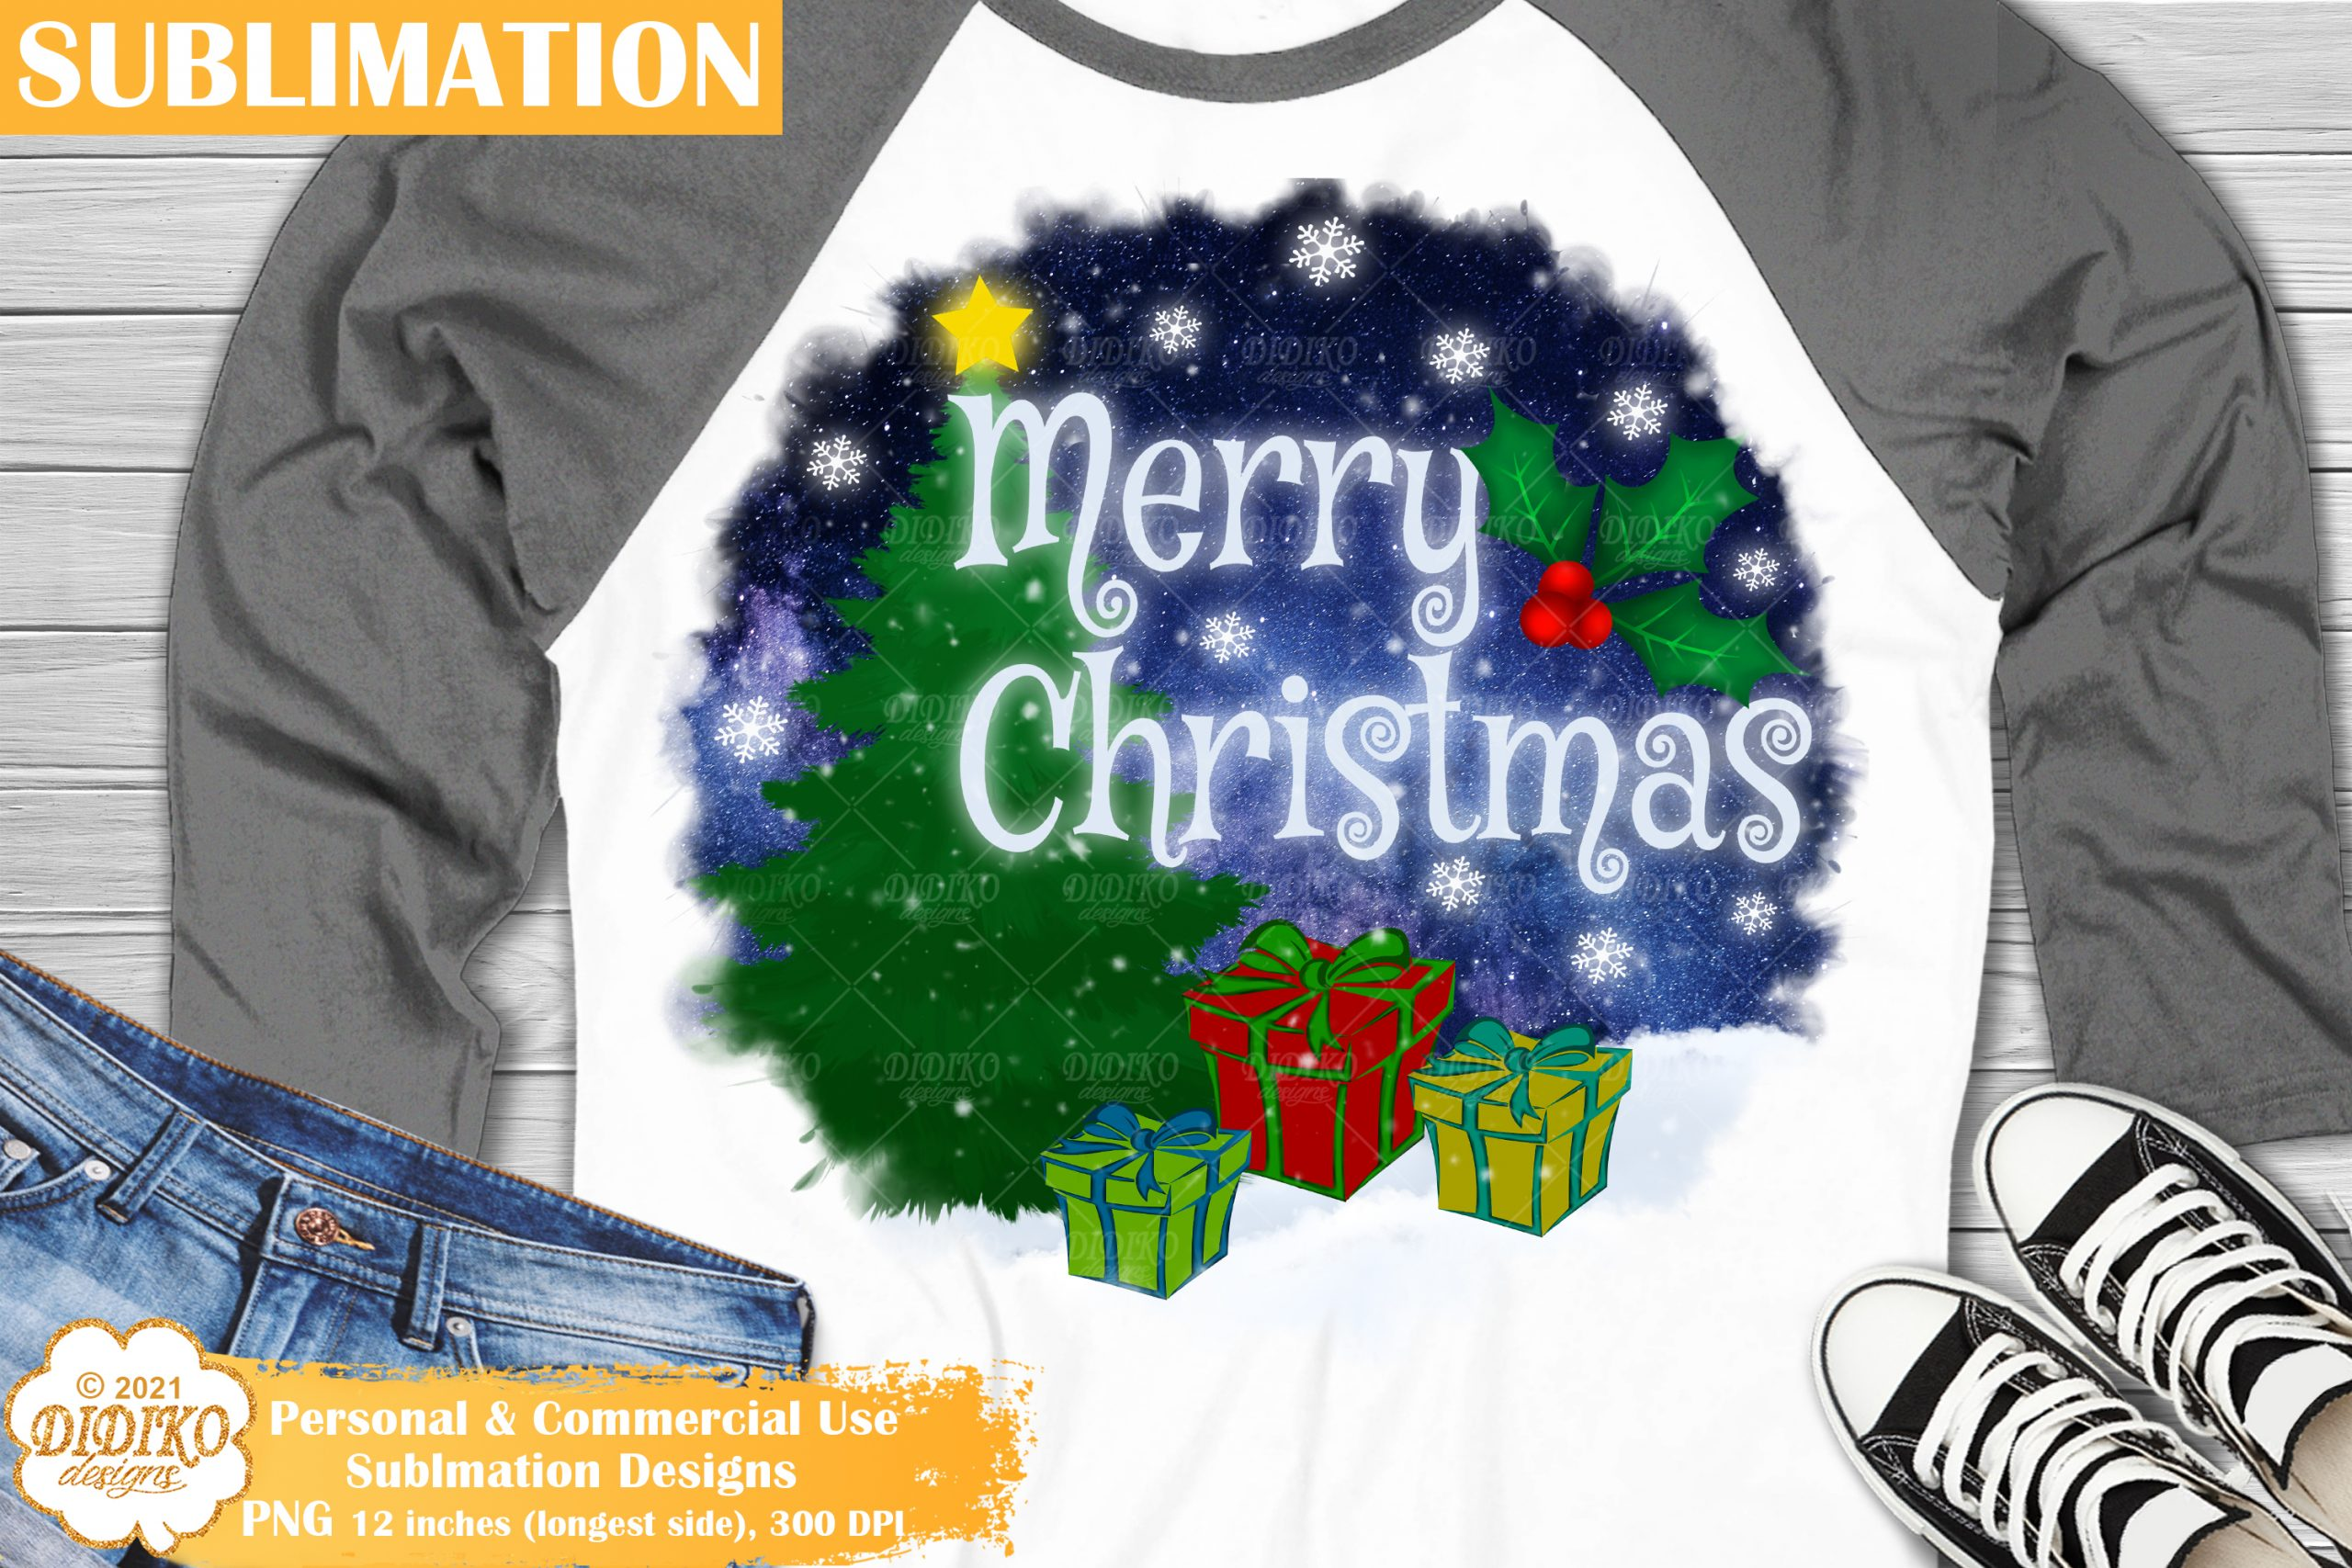 Merry Christmas Sublimation